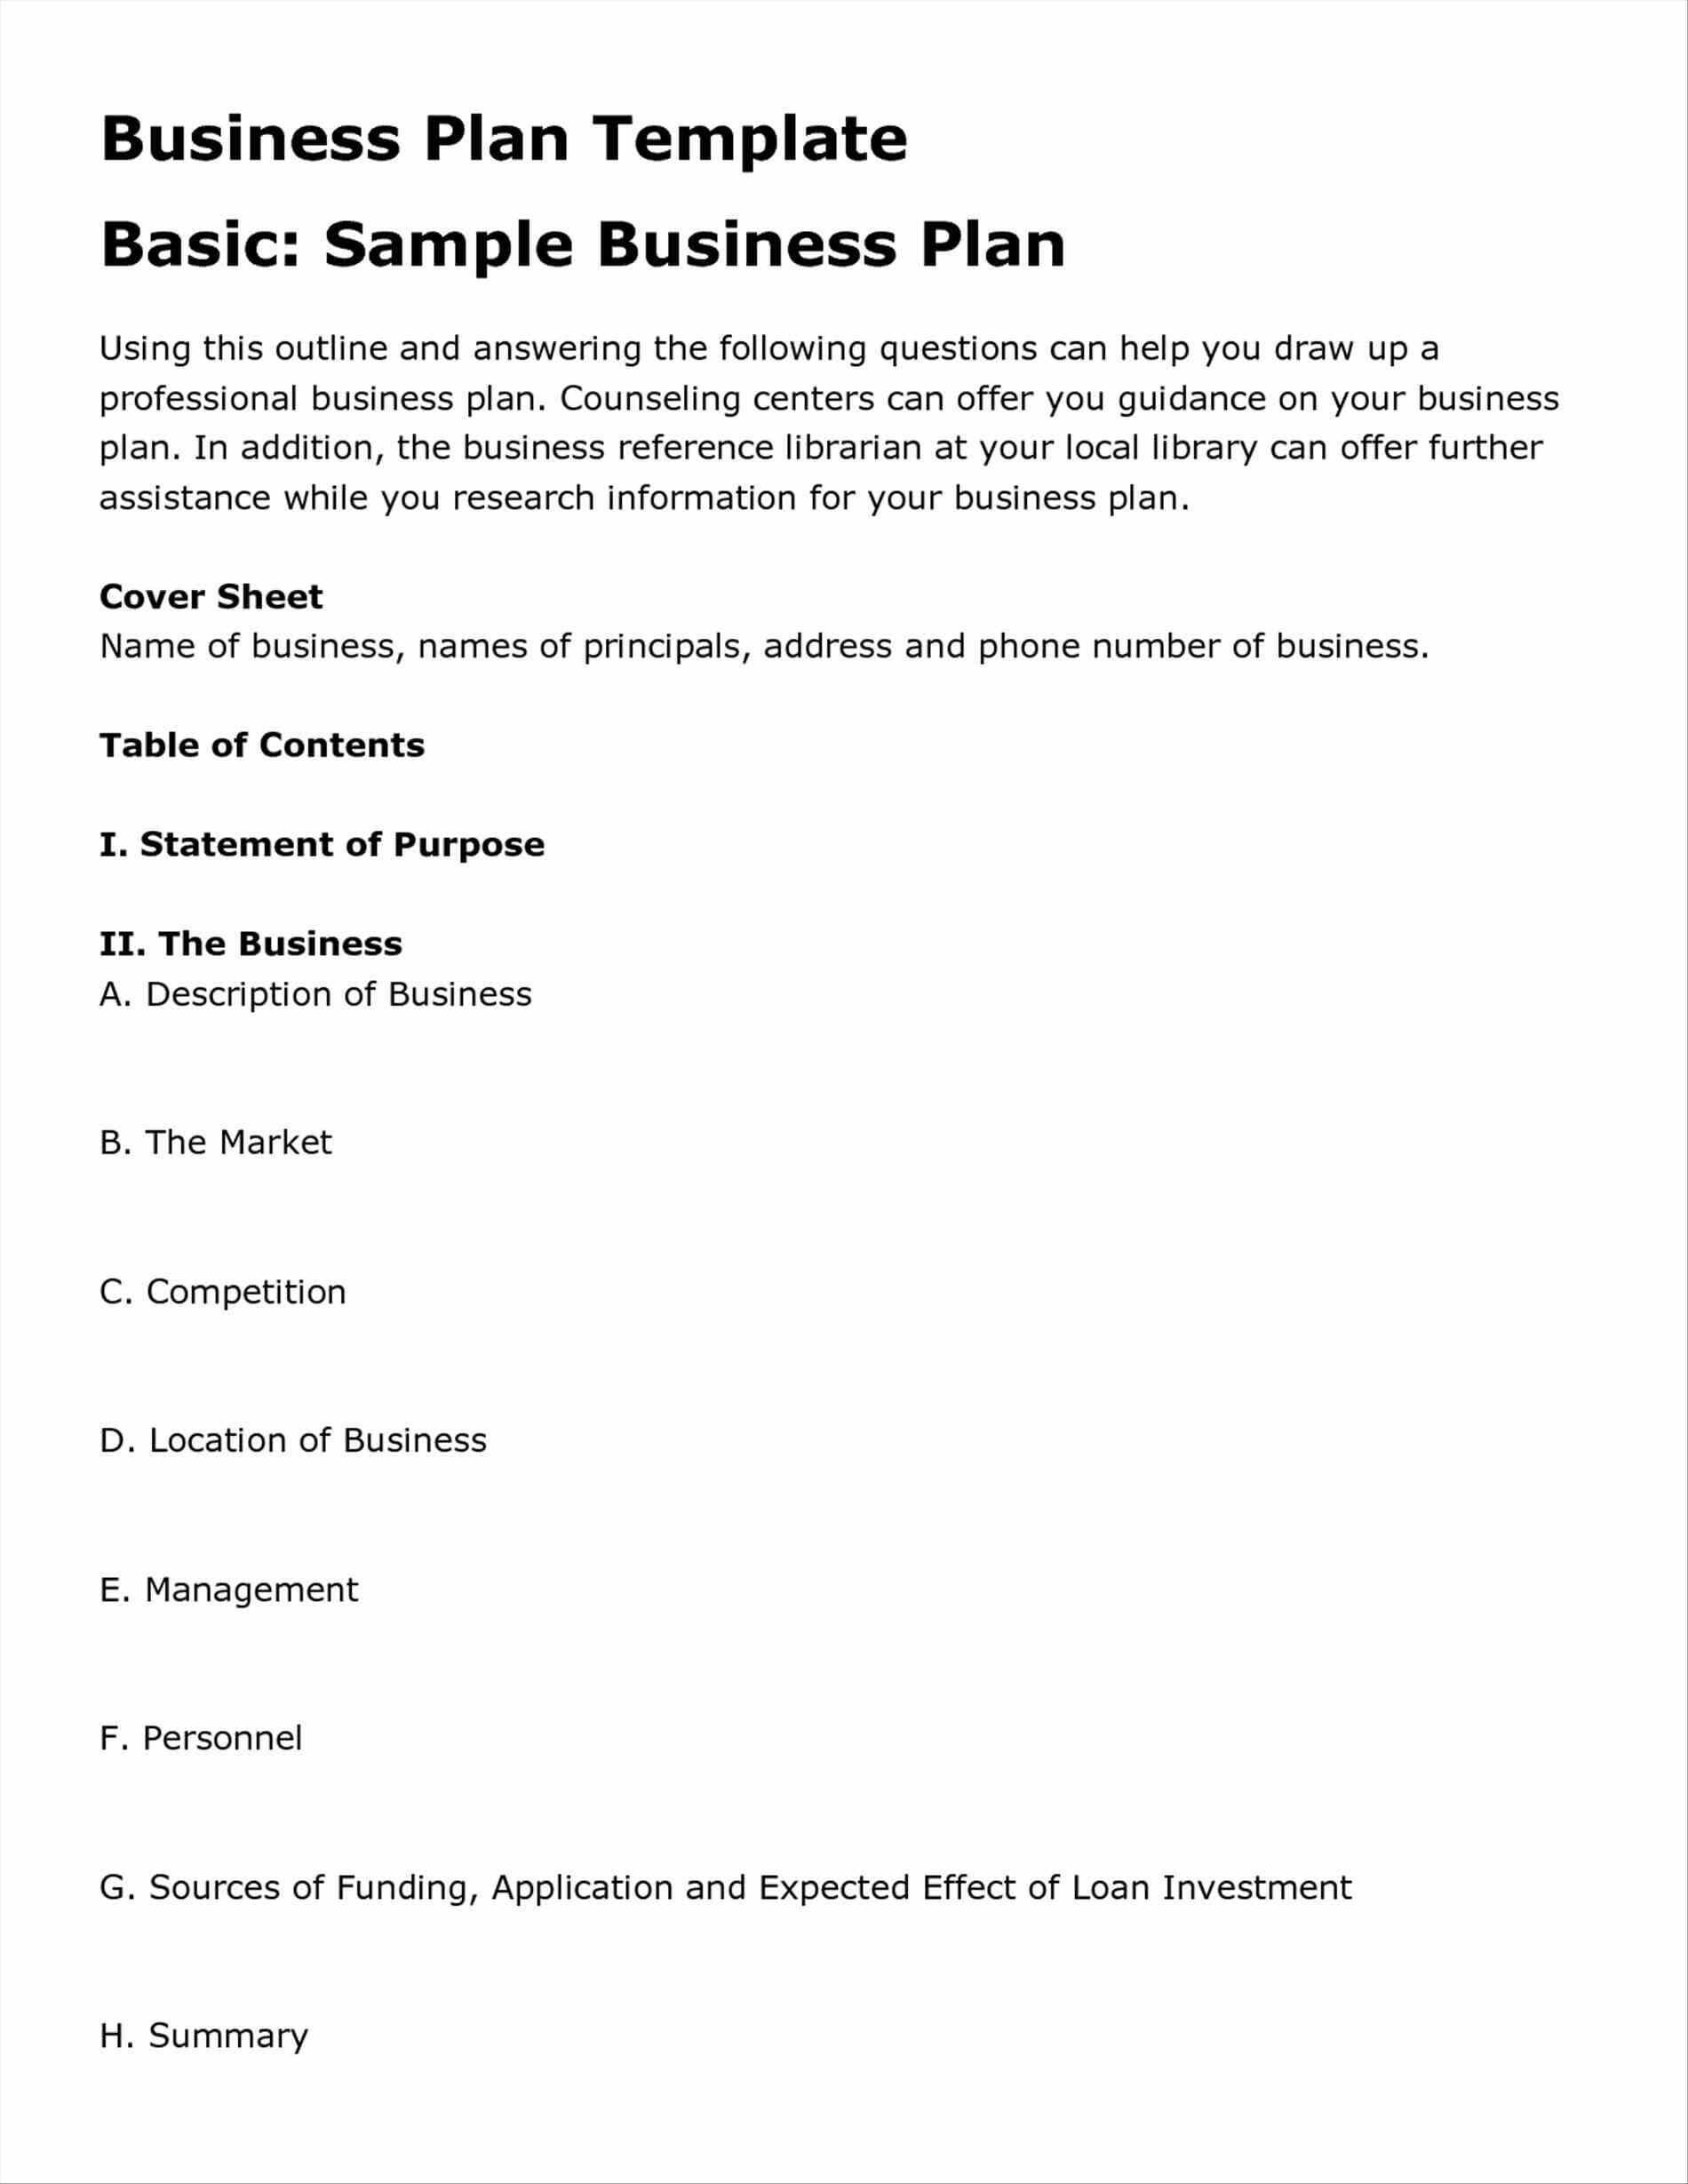 Business Plan Template Restaurant Templates In Word Excel with Business Plan Template Free Word Document